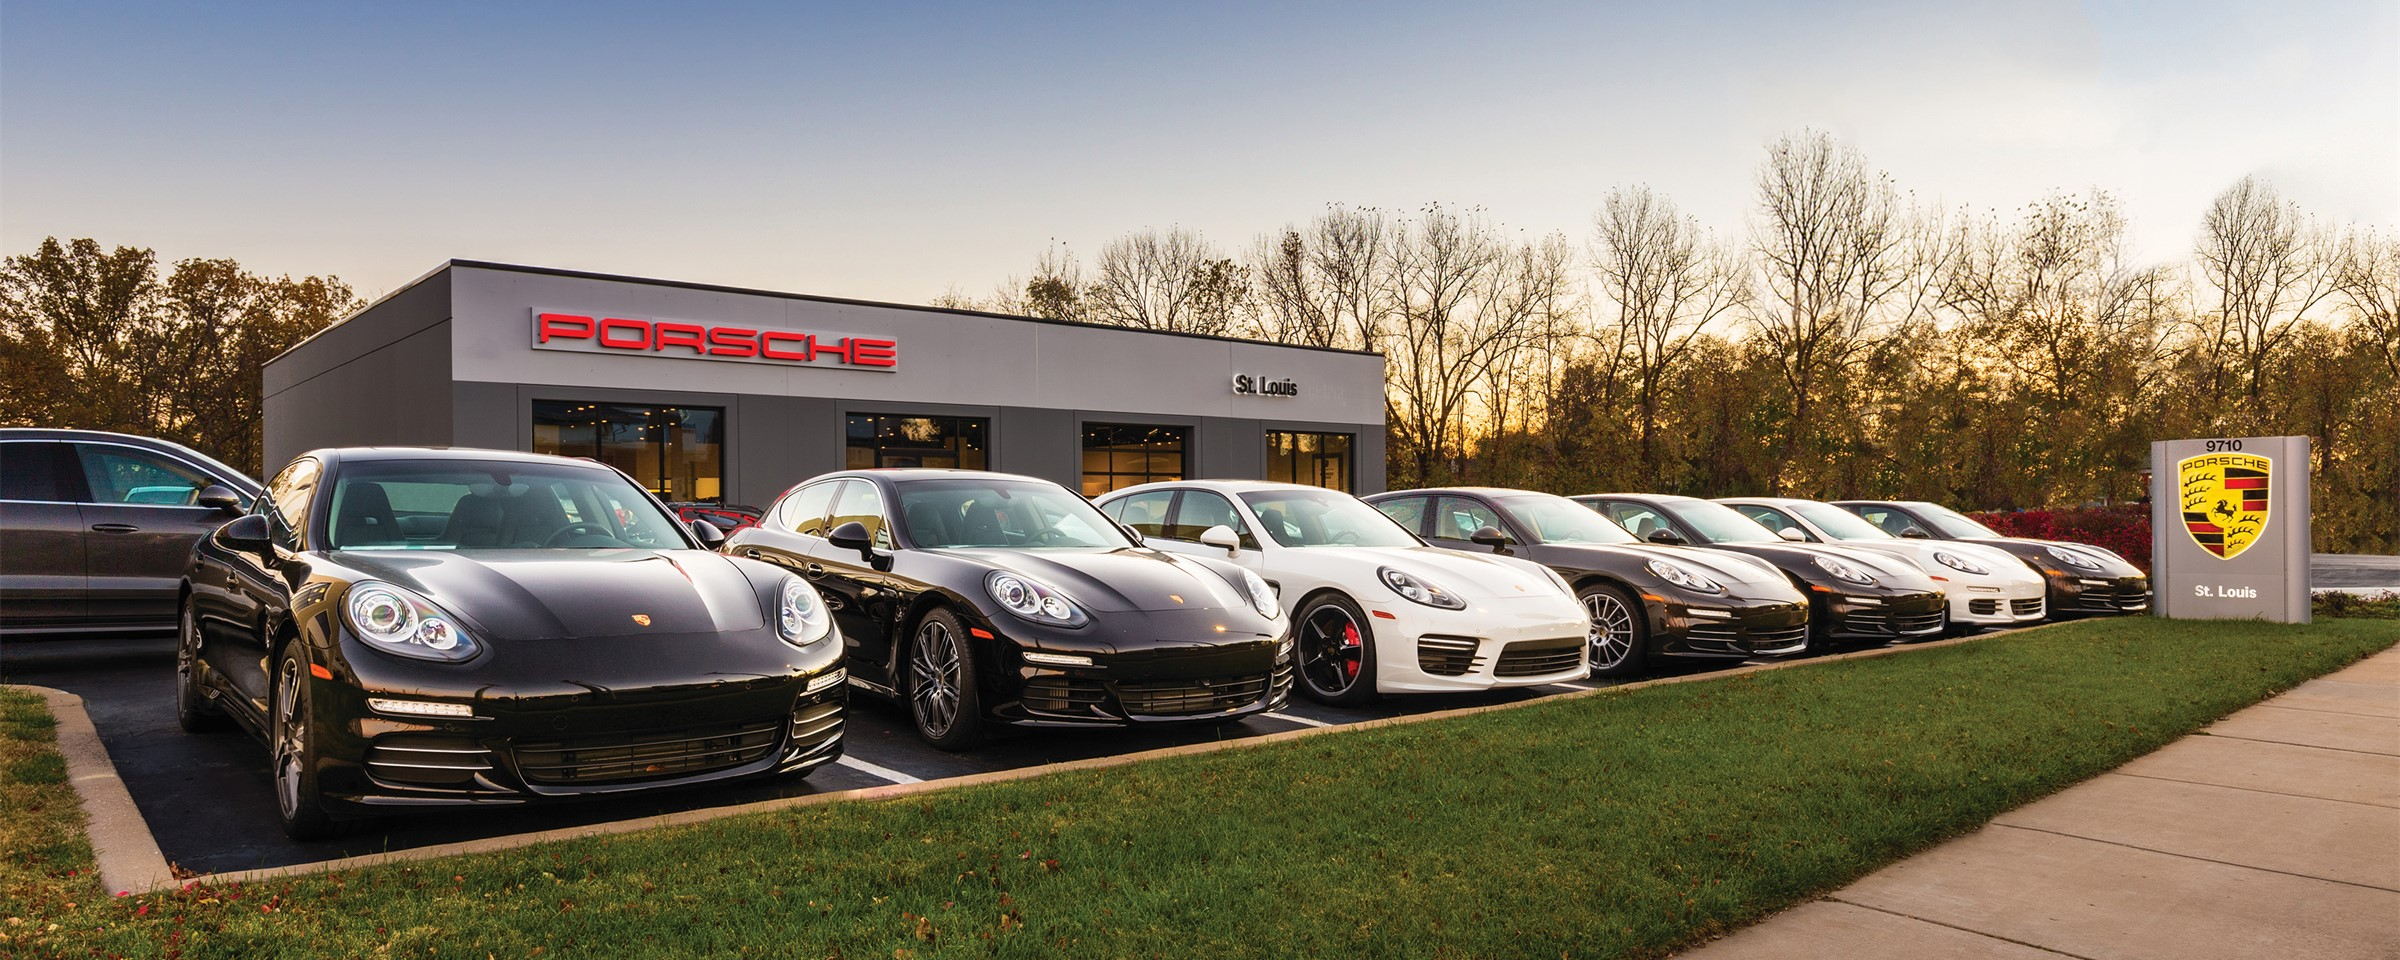 porsche st. louis named top dealer -